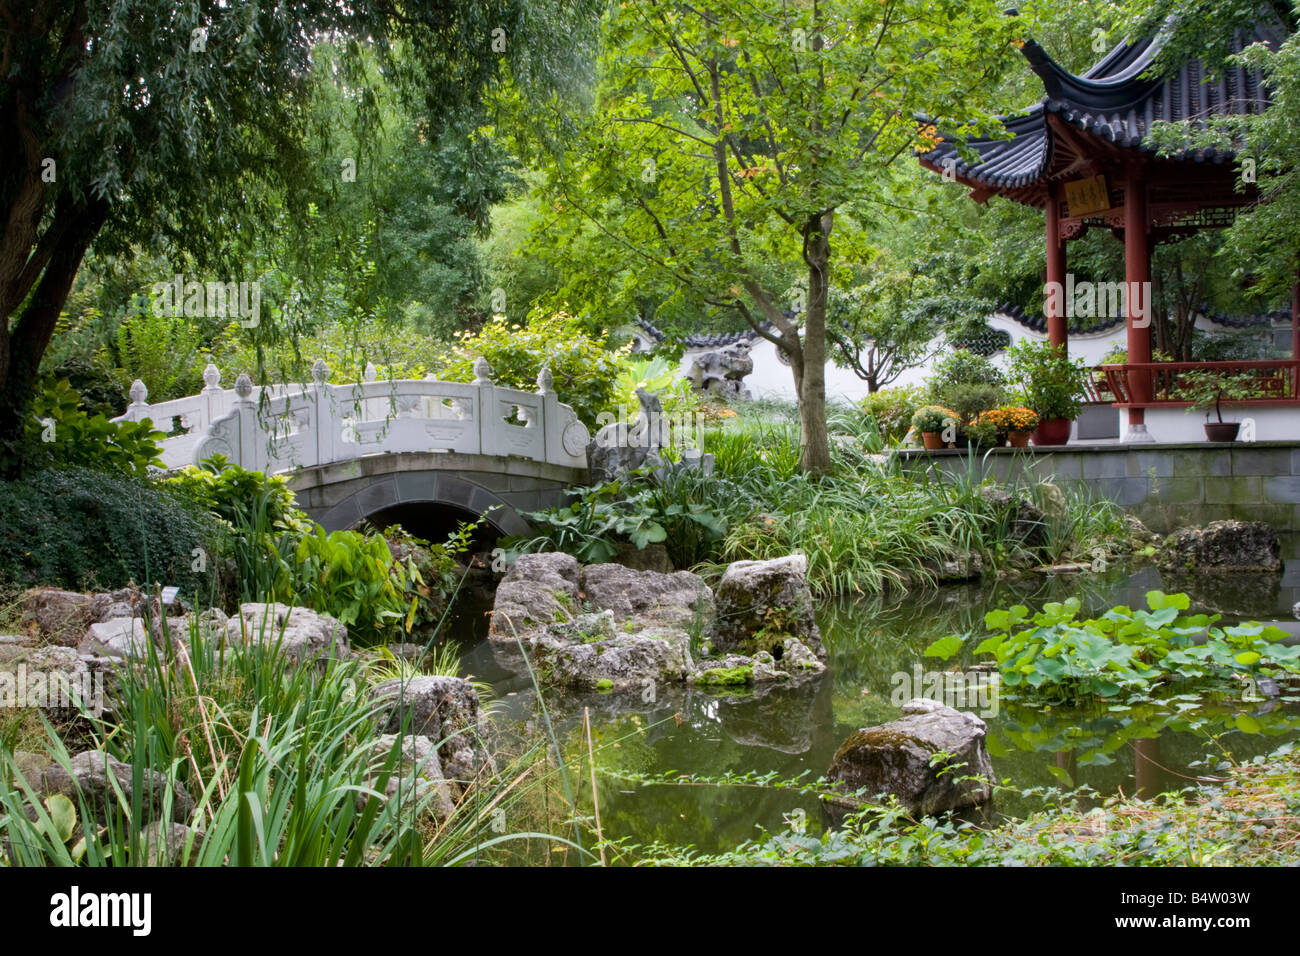 St Louis Missouri Chinese Garden Missouri Botanical Garden Stock Photo 20217901 Alamy